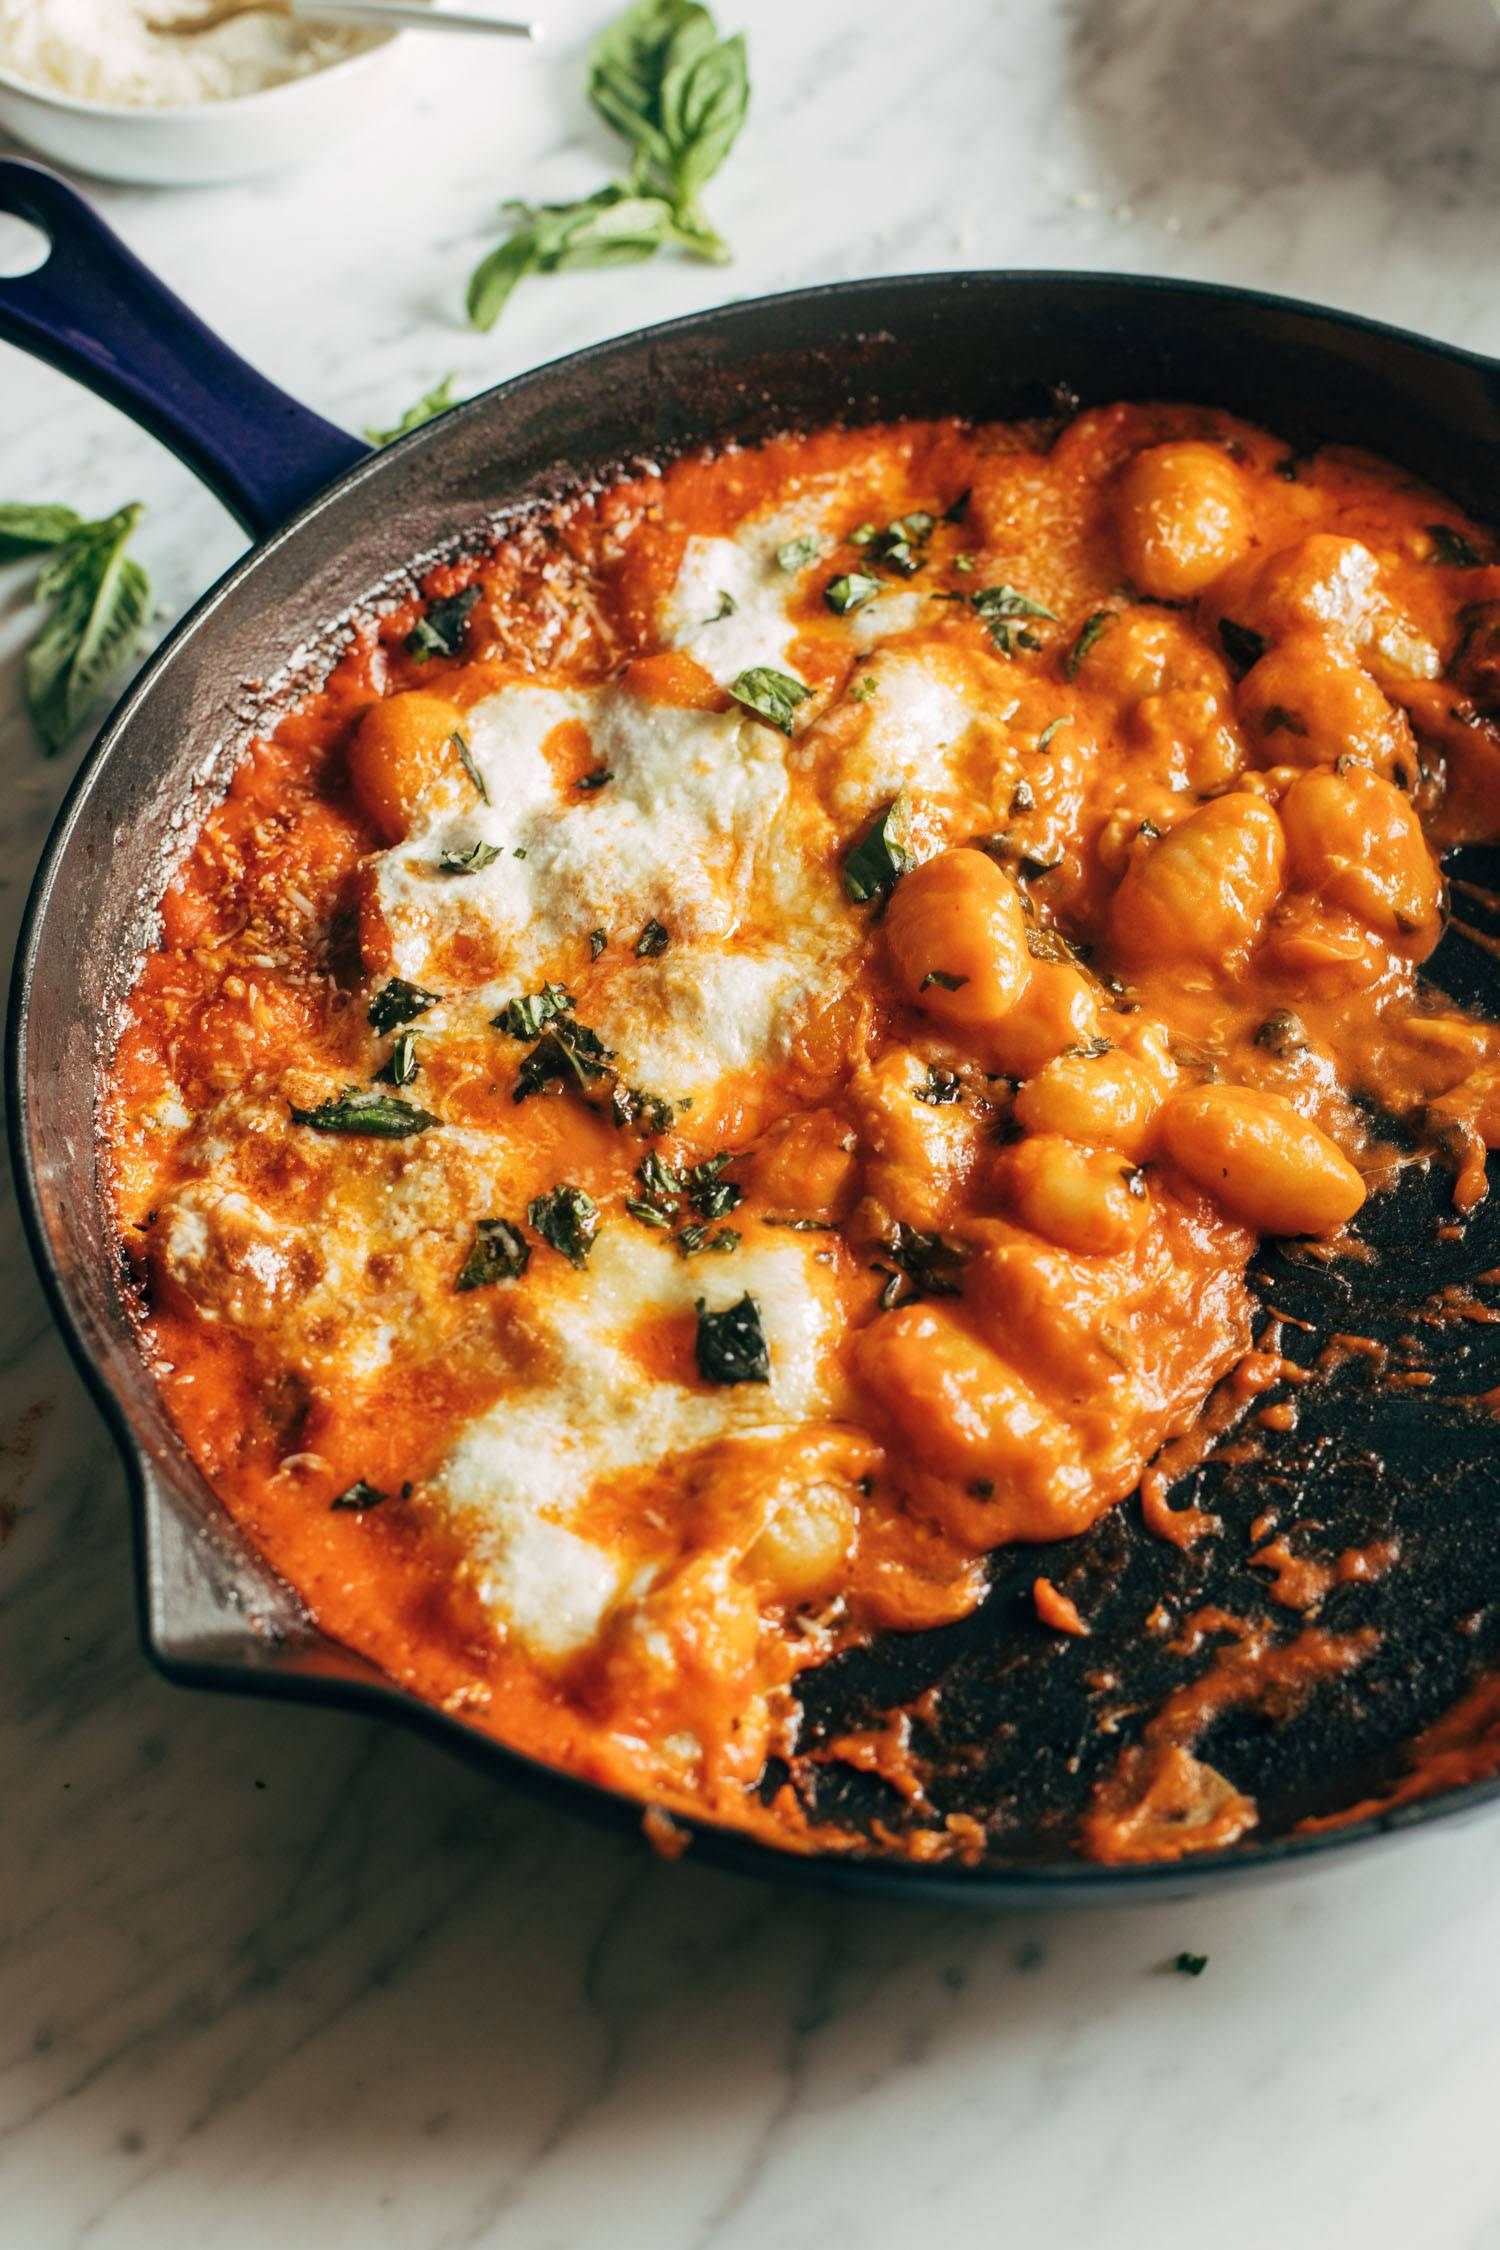 Three cheese baked gnocchi in a cast iron pan.